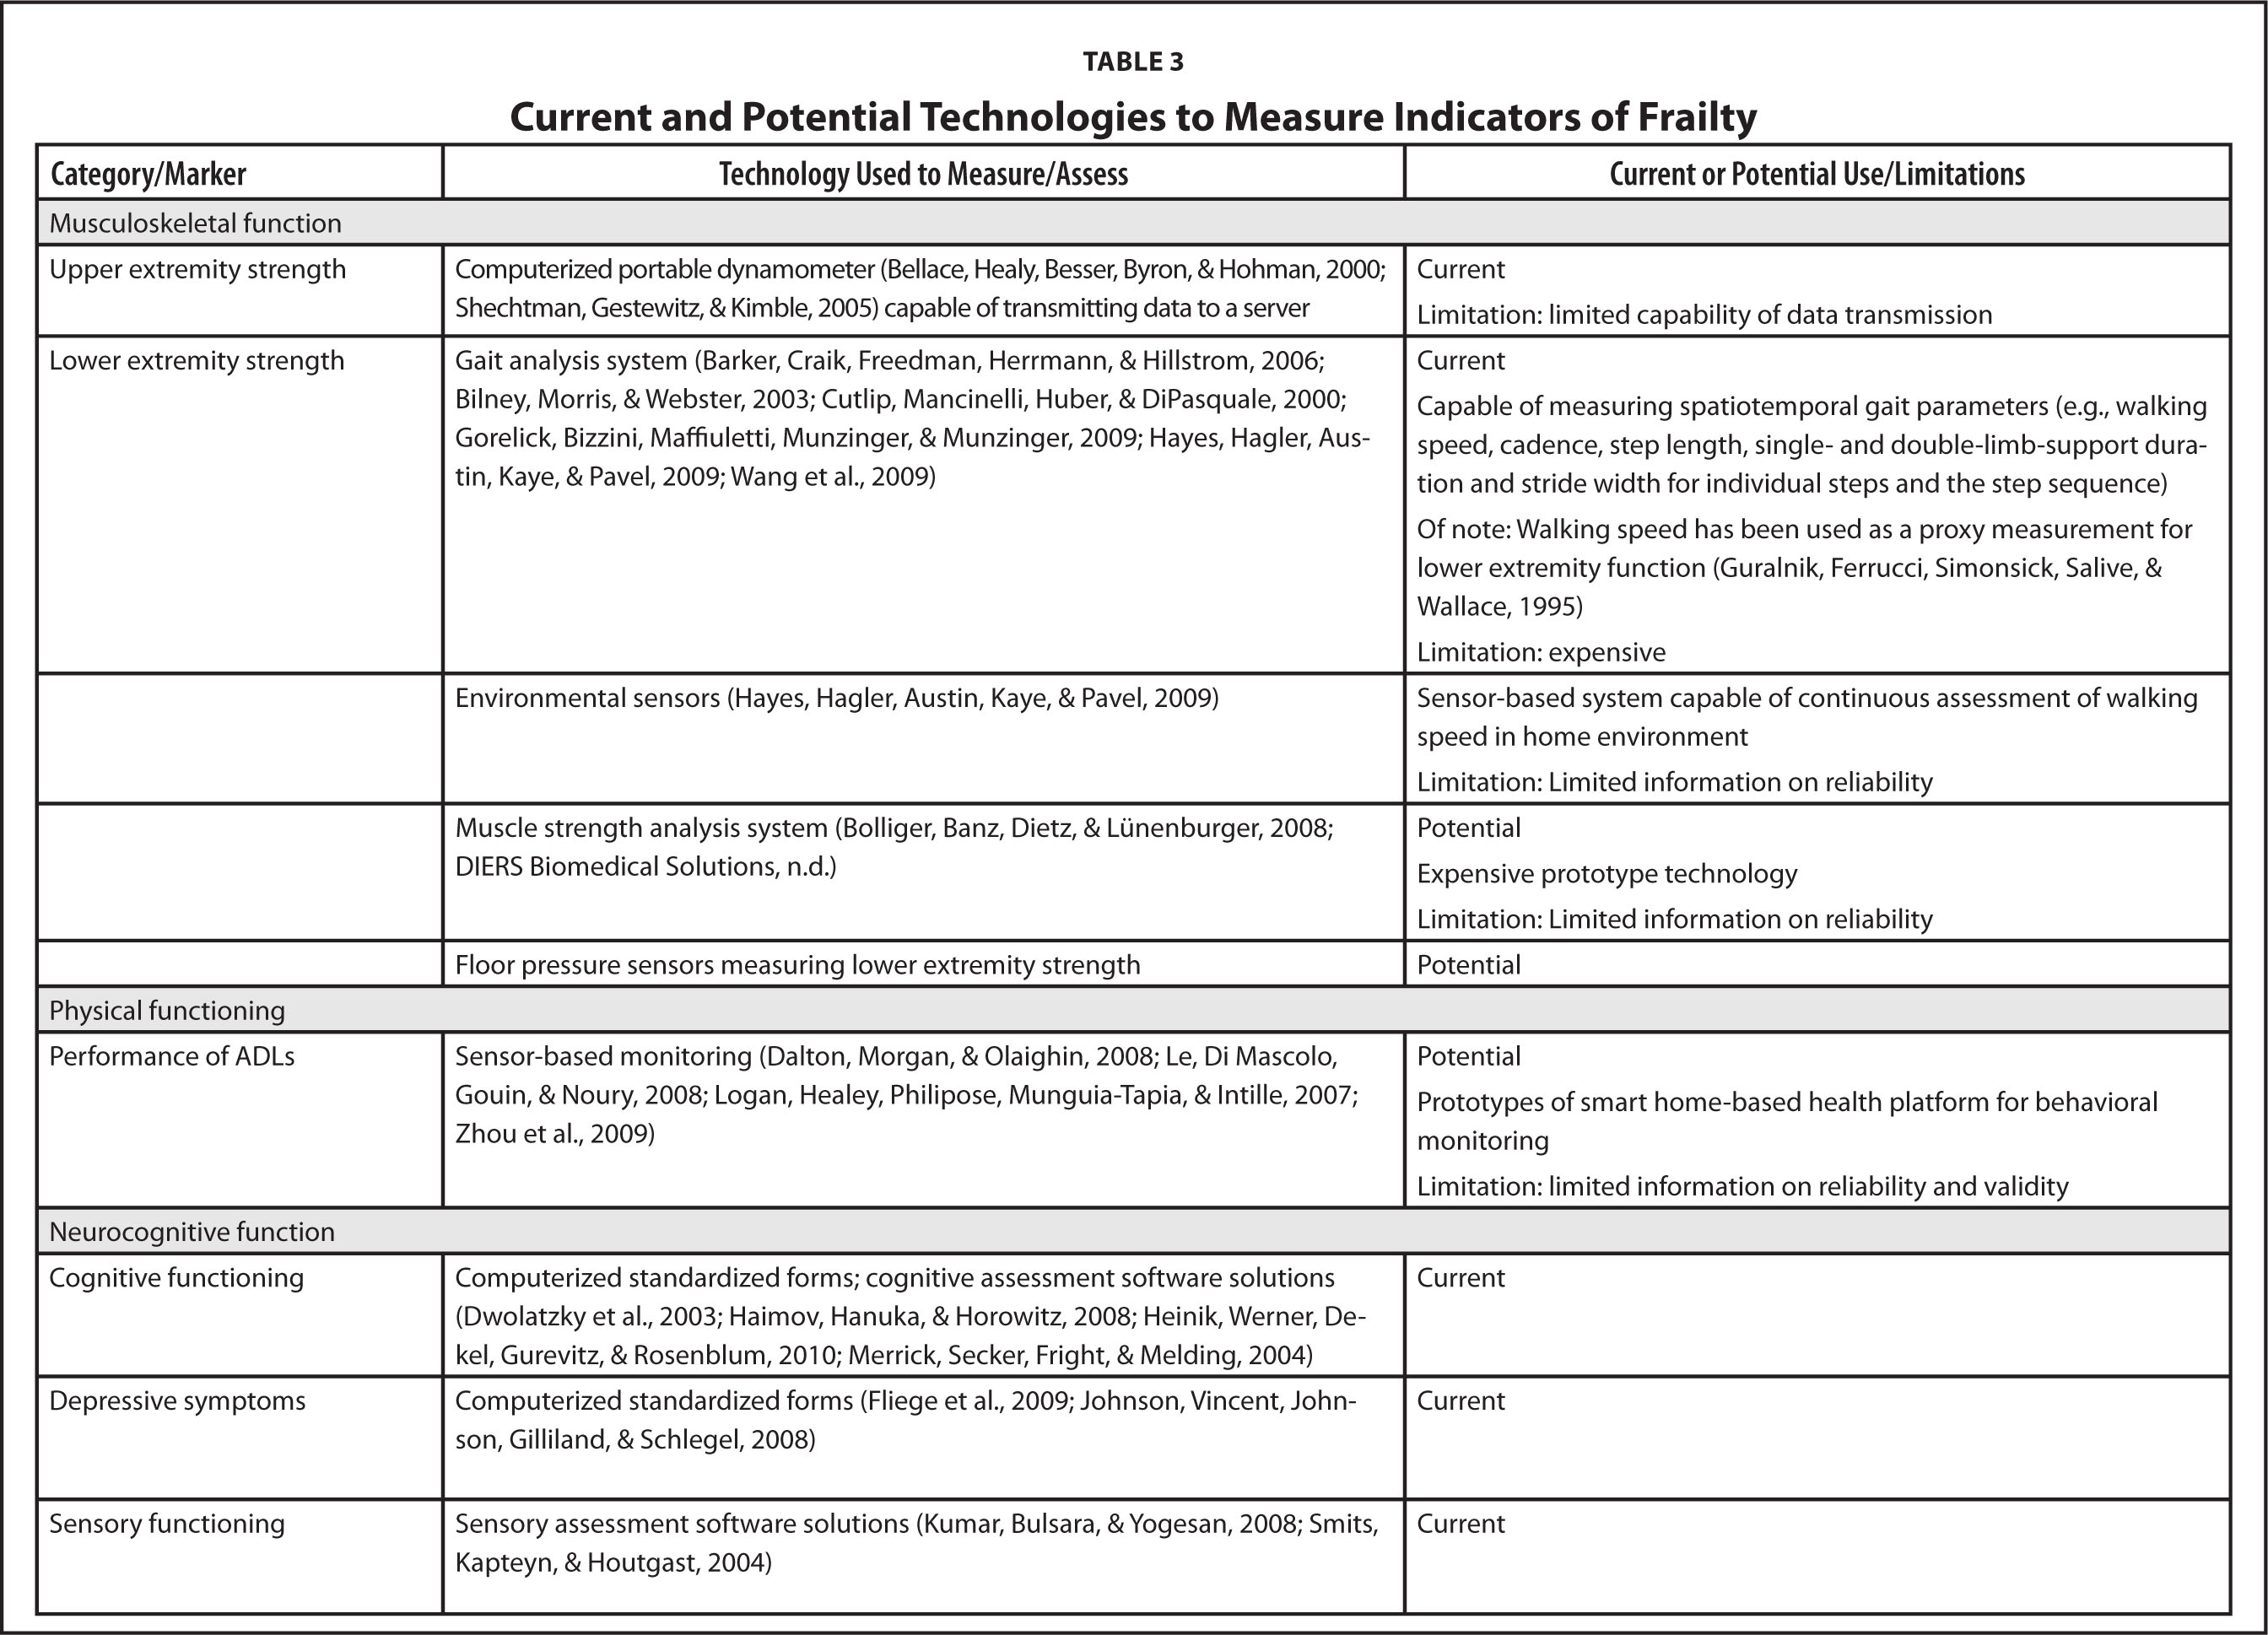 Current and Potential Technologies to Measure Indicators of Frailty